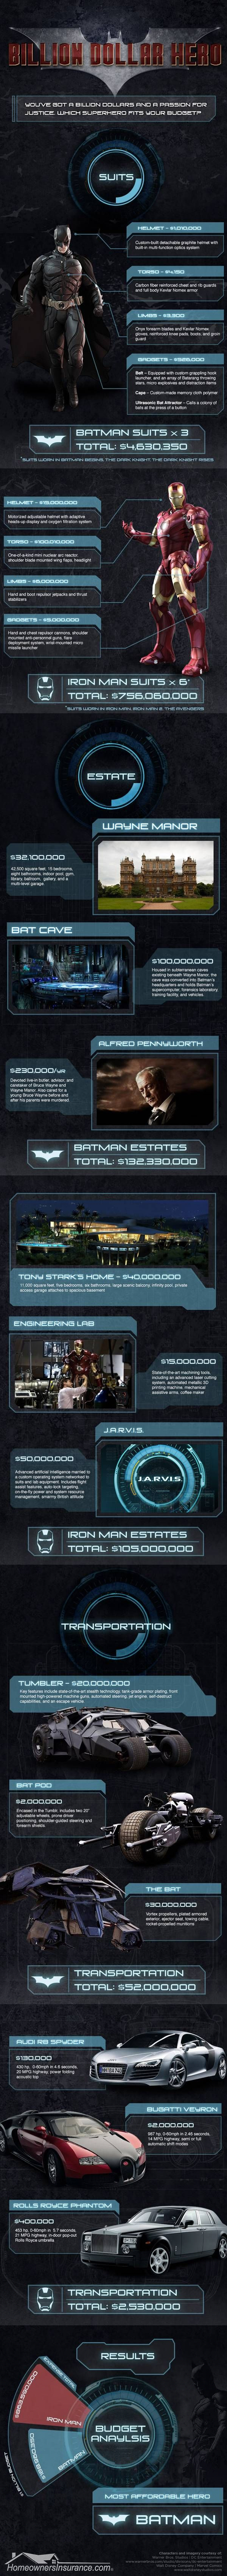 Iron Man vs. Batman Cost Analysis-> Iron Man is still better. All that expense went to good use!